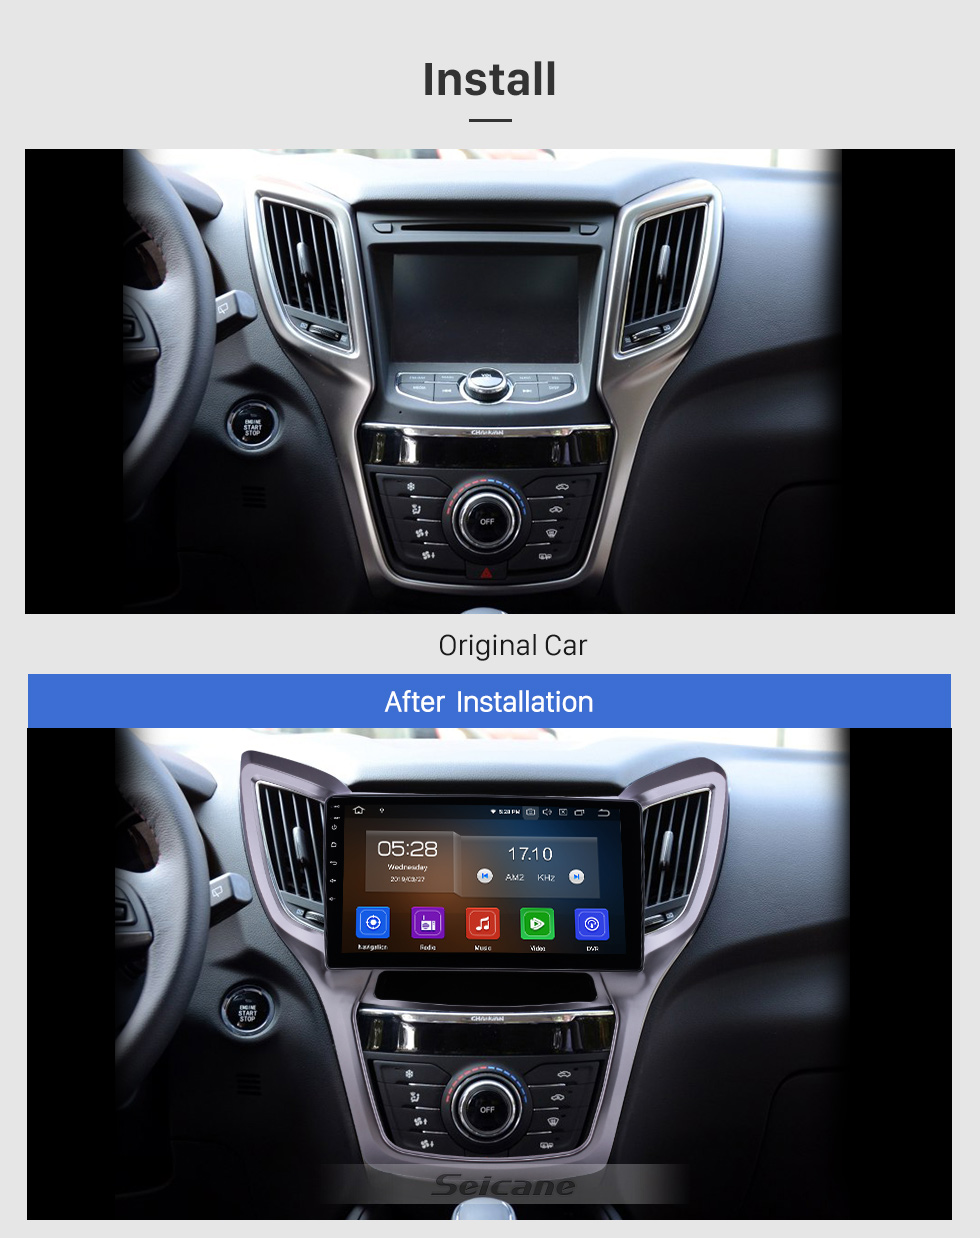 Seicane 10.1 pulgadas 2013-2016 Changan CS75 Android 9.0 Navegación GPS Radio Bluetooth HD Pantalla táctil AUX USB WIFI Carplay soporte OBD2 1080P Video